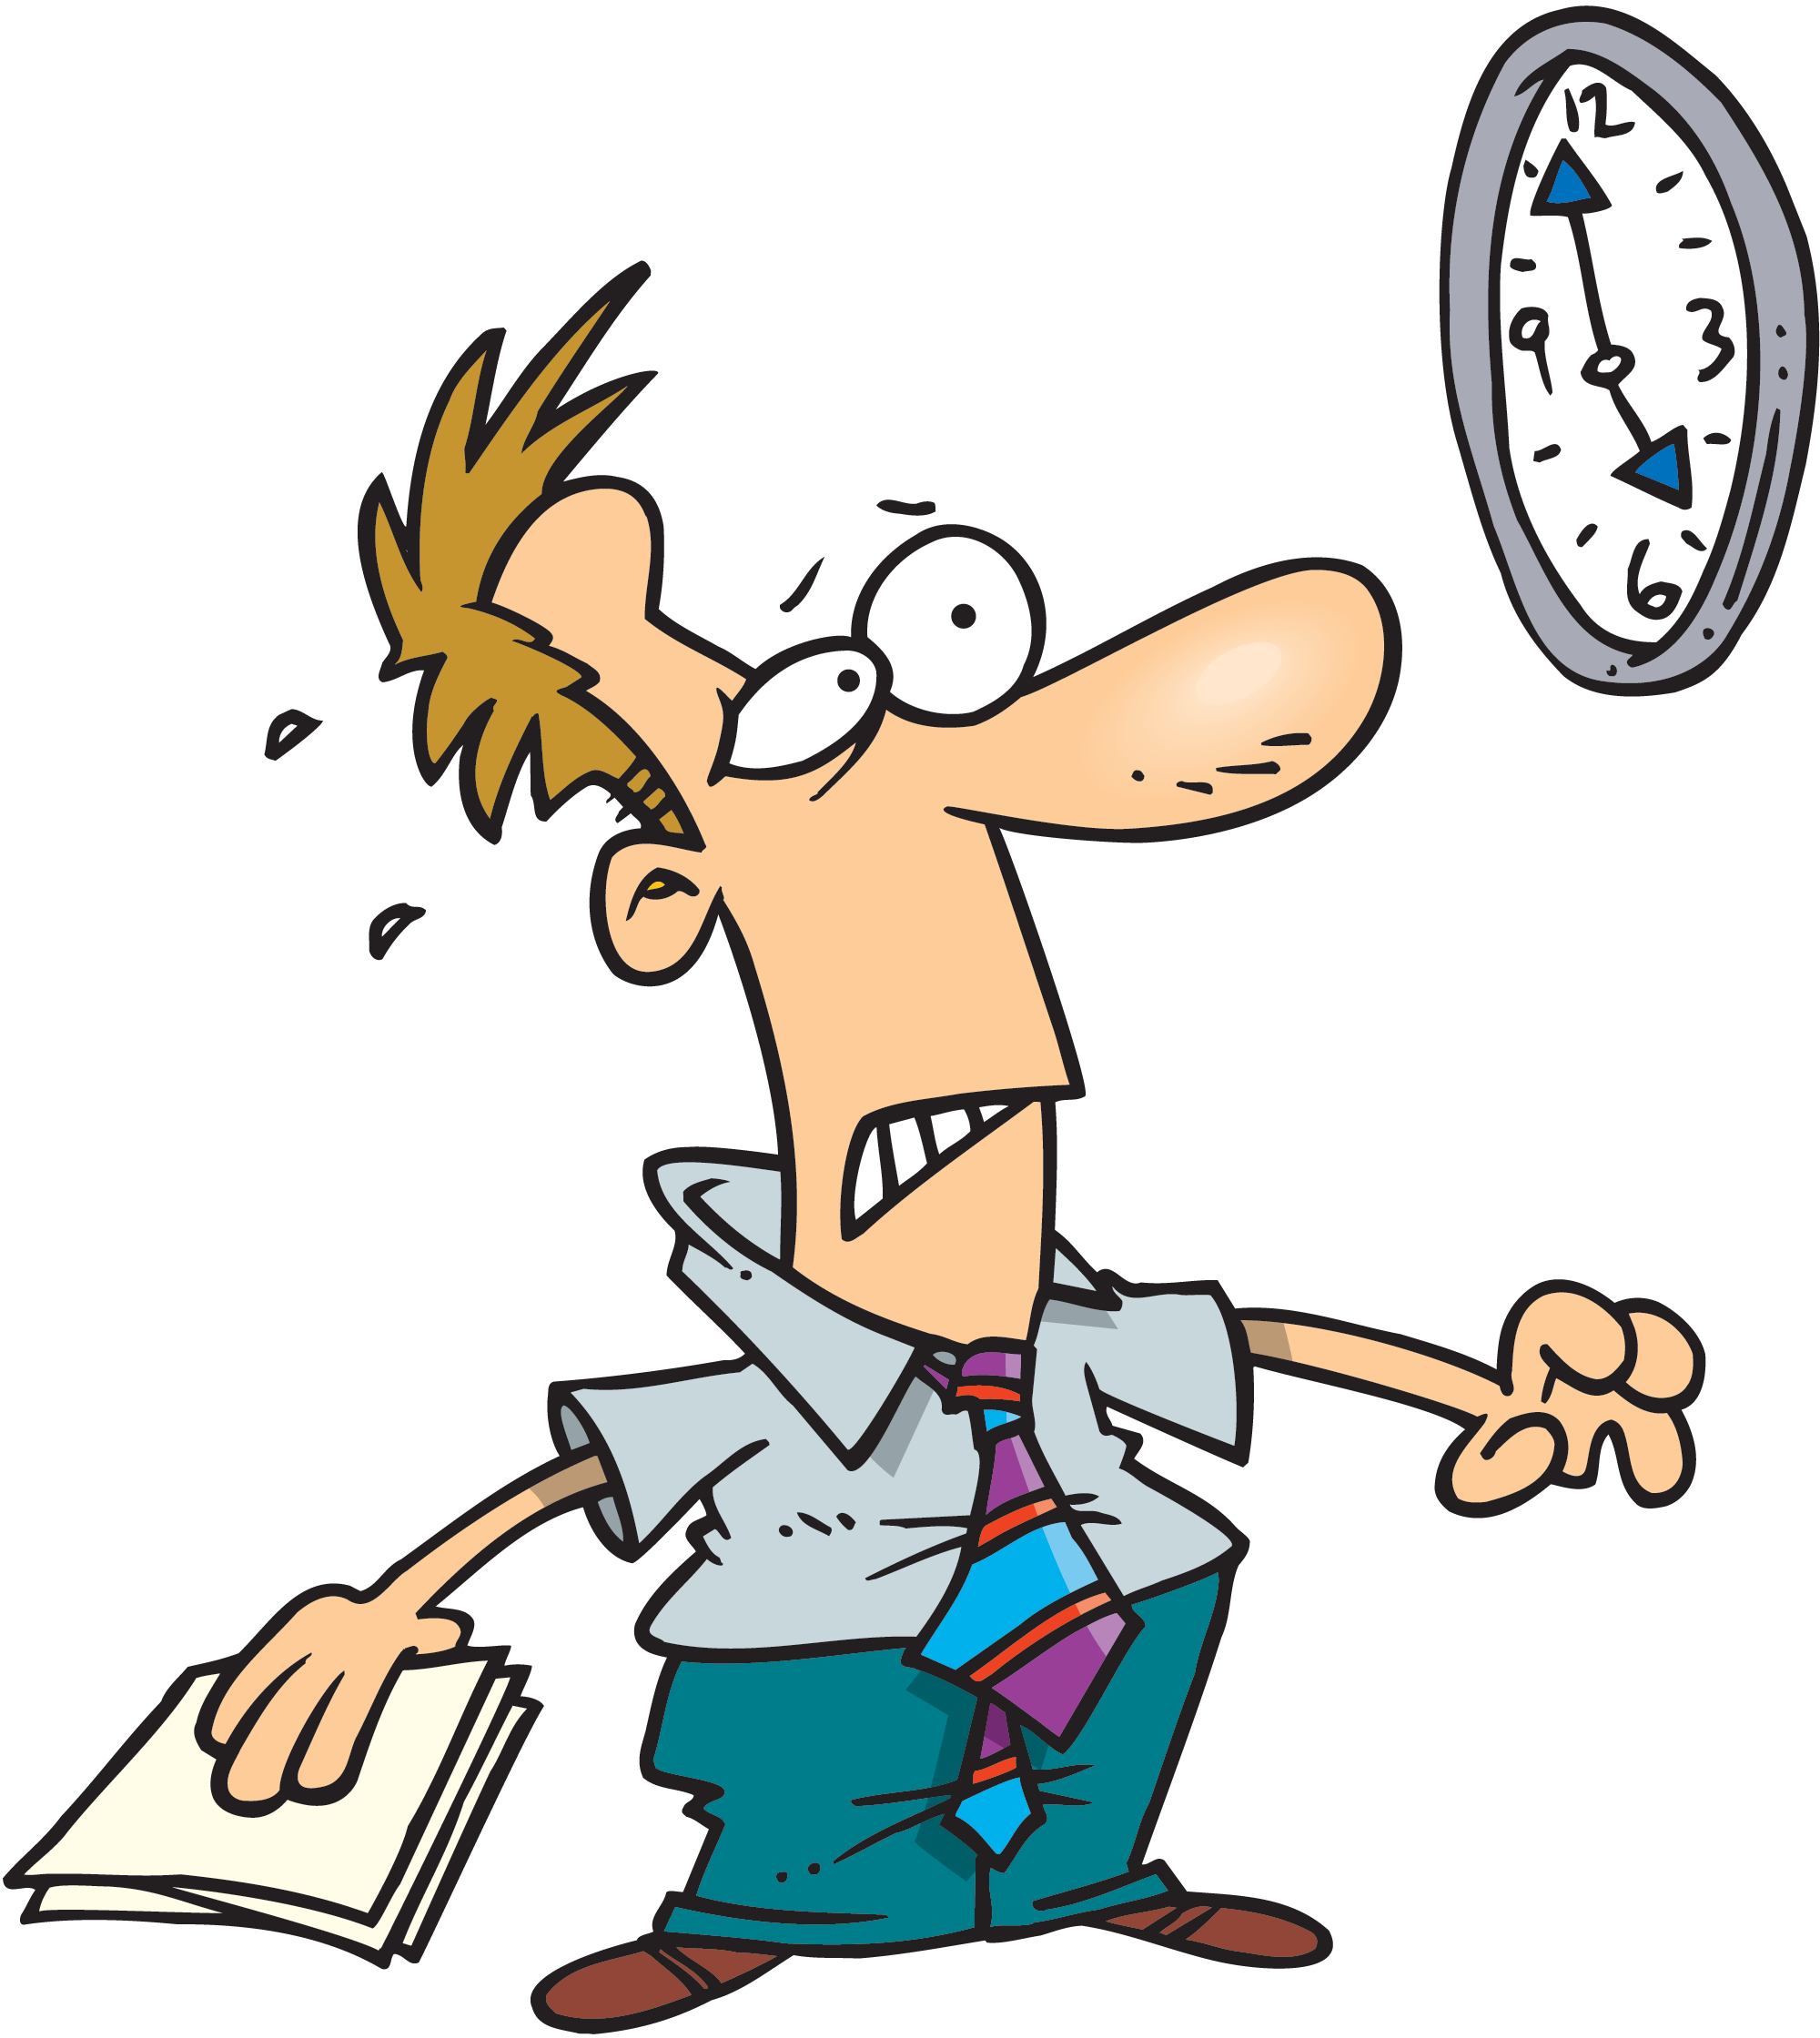 Running late clipart freeuse library Running late clipart clipart images gallery for free ... freeuse library